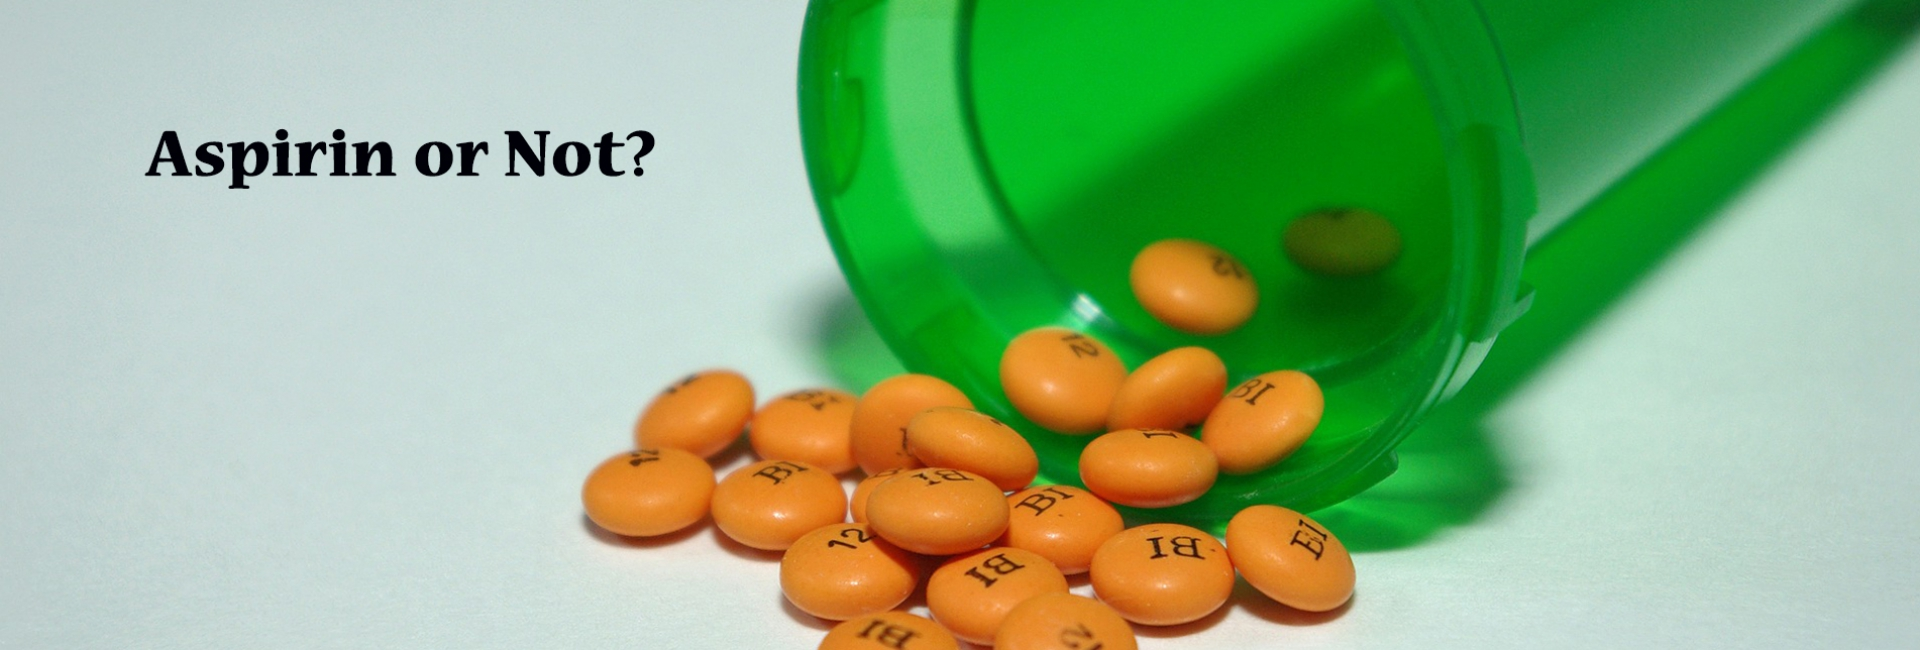 WHAT'S THE DEAL WITH ASPIRIN?